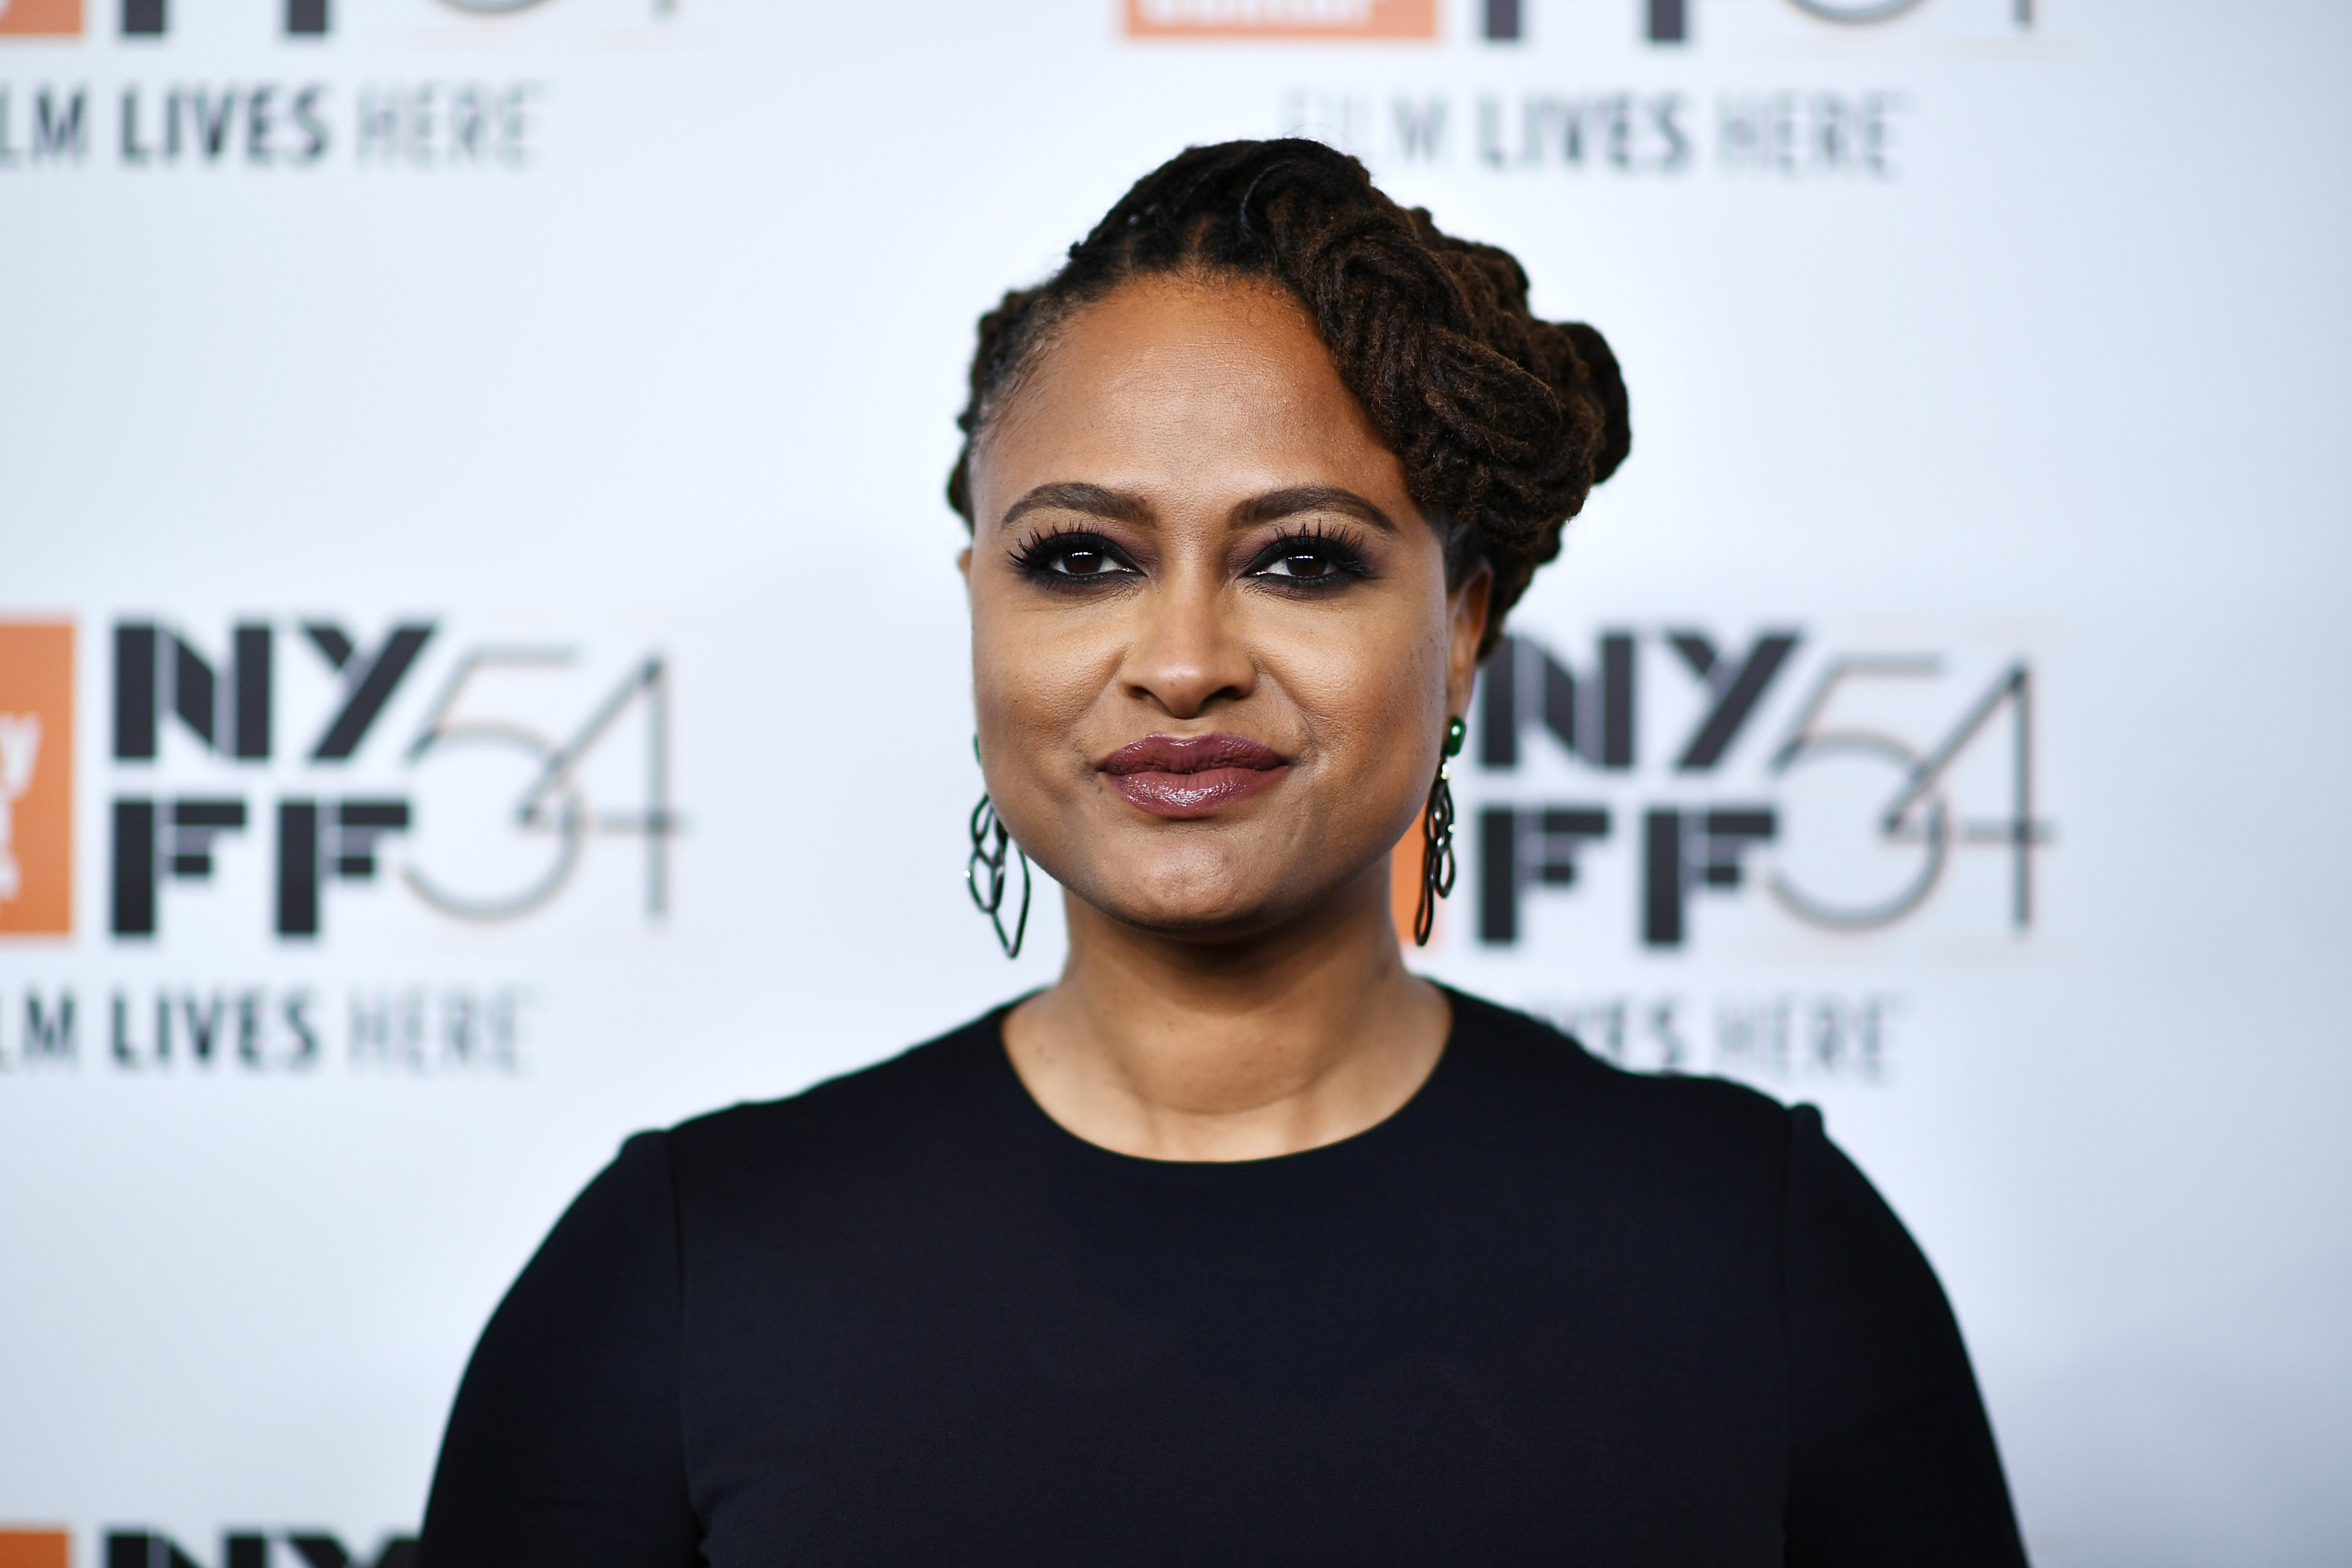 Director Ava DuVernay attends the 54th New York Film Festival  opening night gala presentation and  13th  world premiere at Alice Tully Hall at Lincoln Center on September 30, 2016 in New York City.